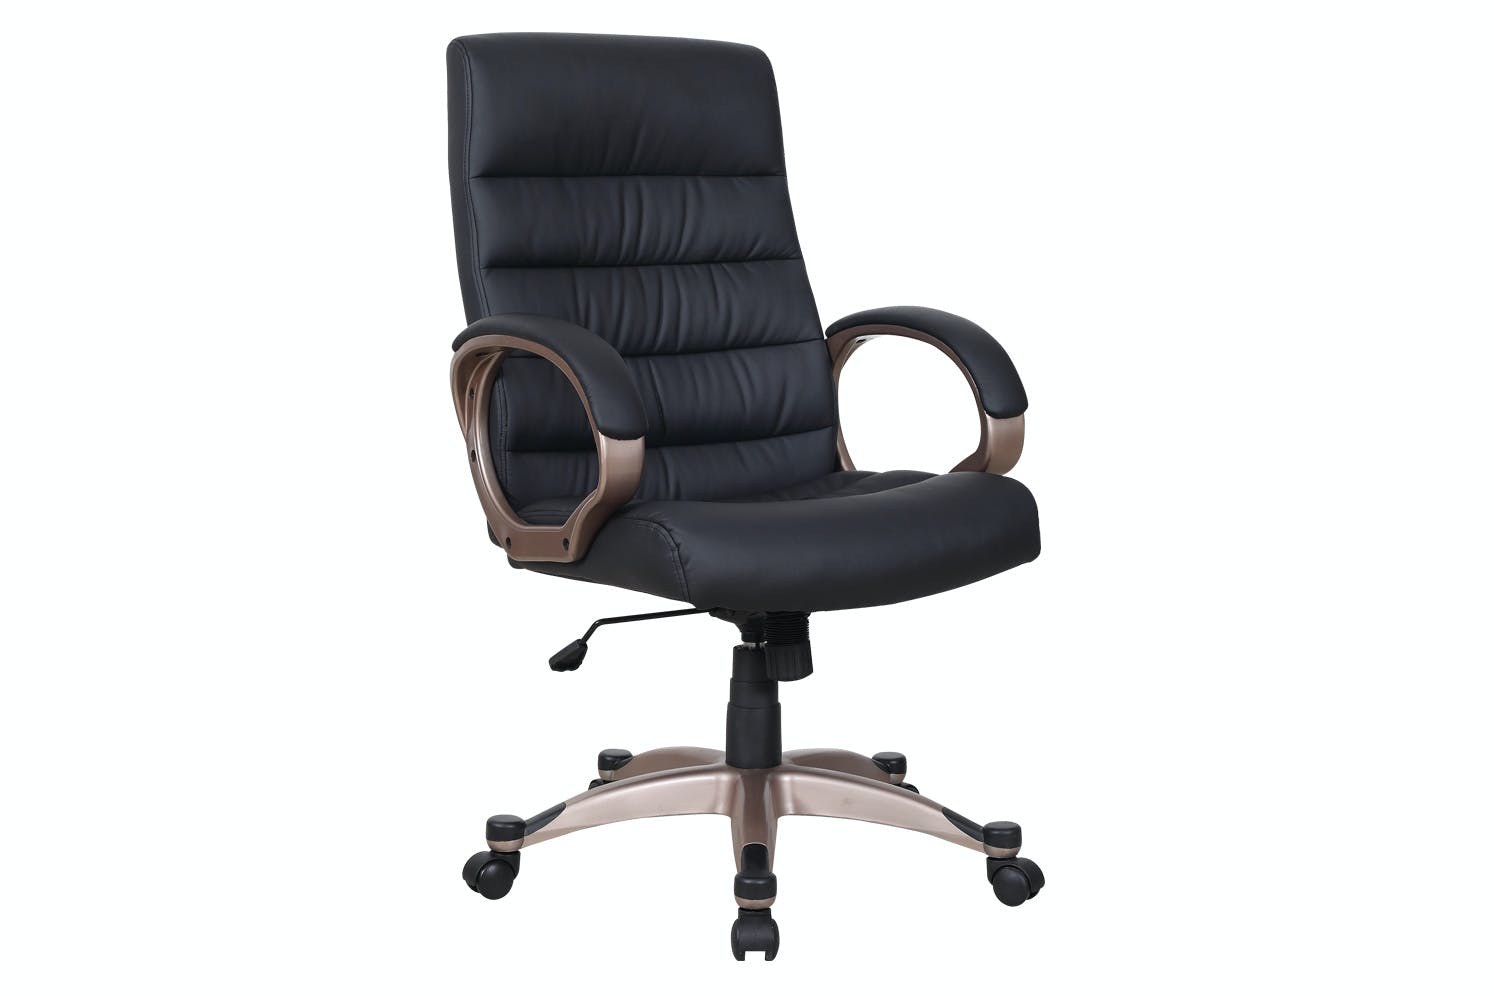 p office high ca back canada with mesh headrest chairs tygerclaw chair large